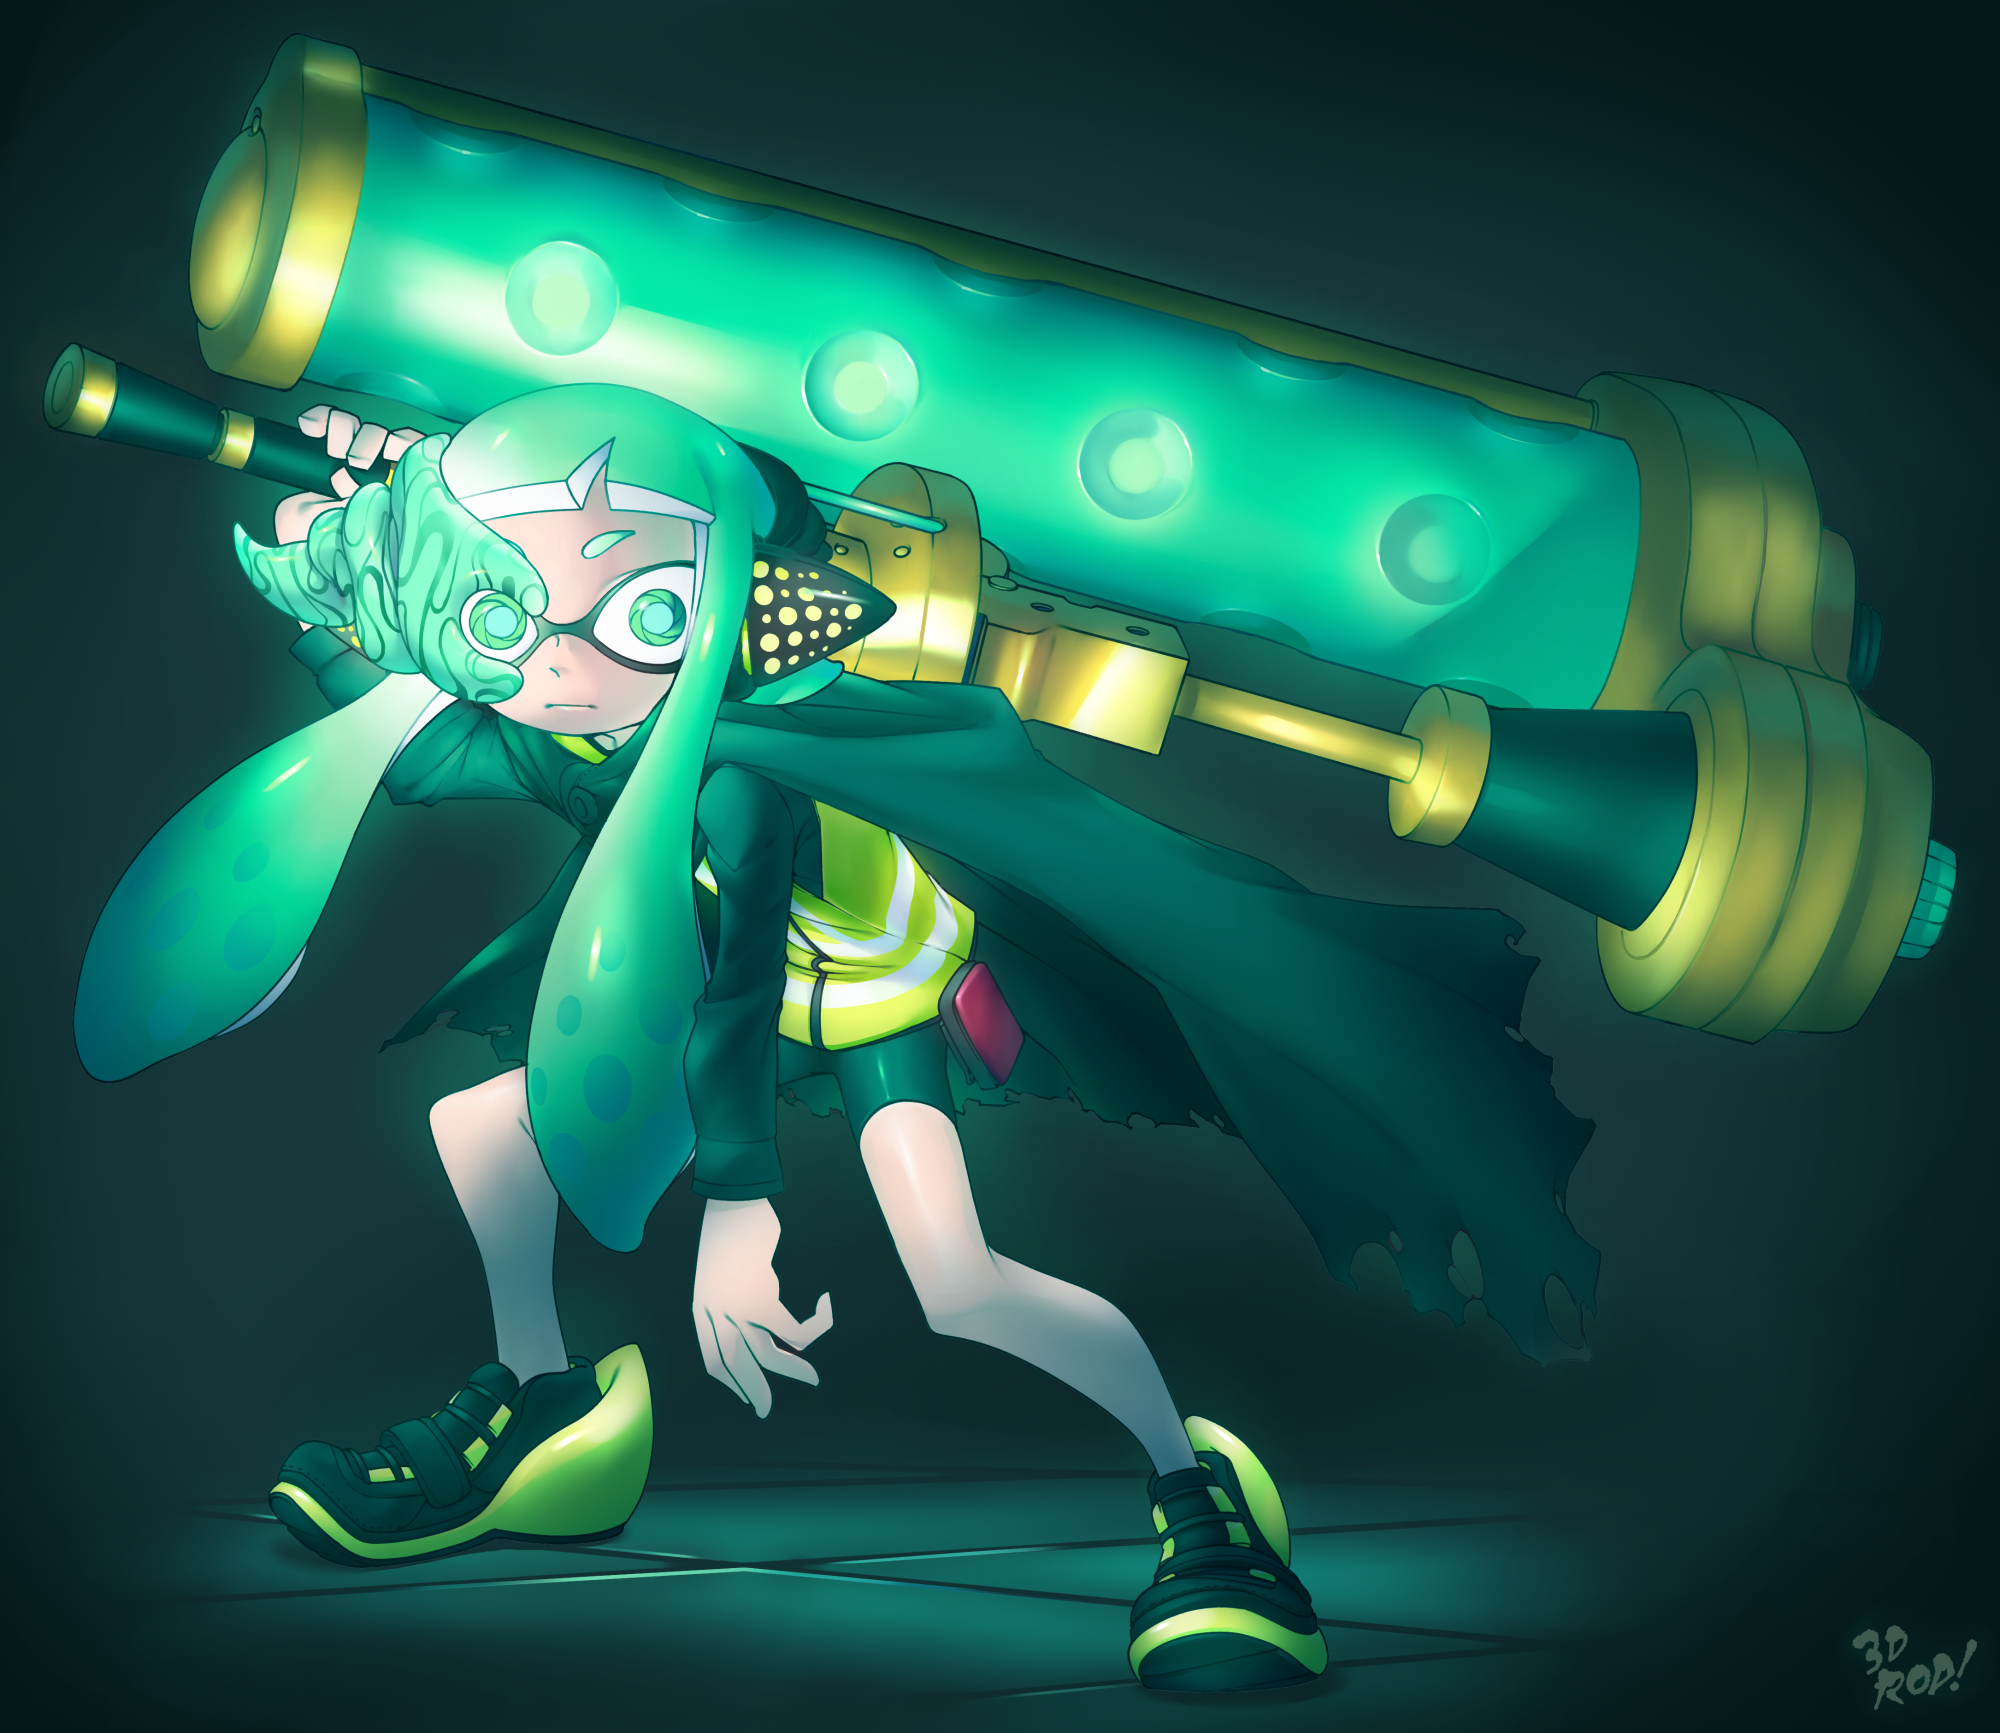 Agent 3 of the abyss